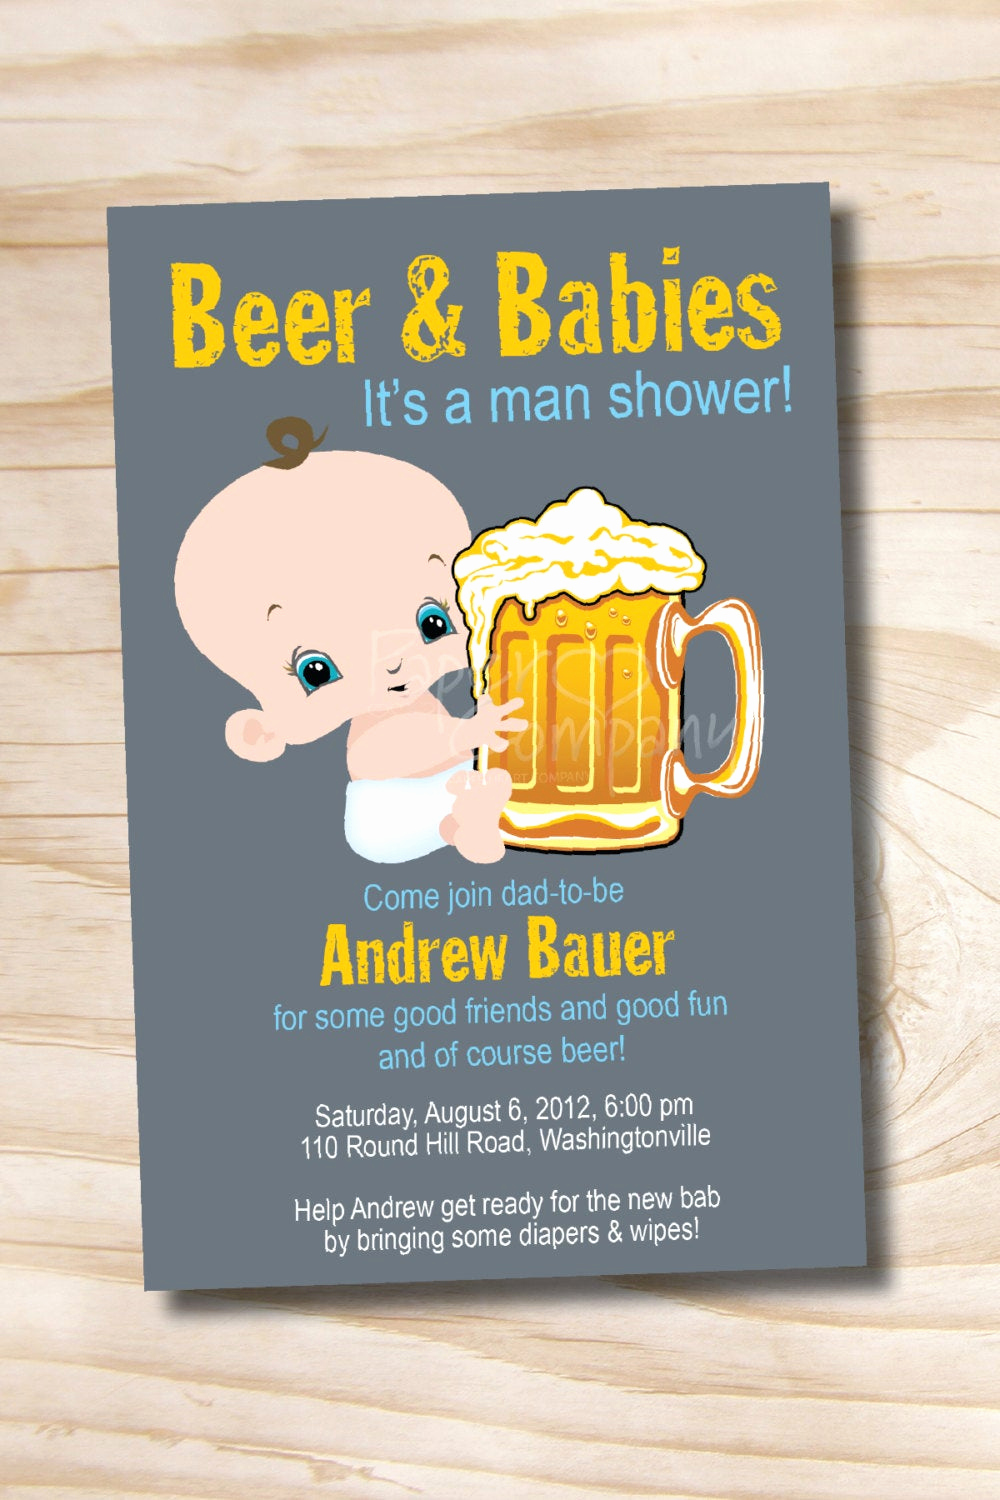 Diaper Party Invitation Templates Free New Man Shower Beer and Babies Diaper Party Invitation Printable